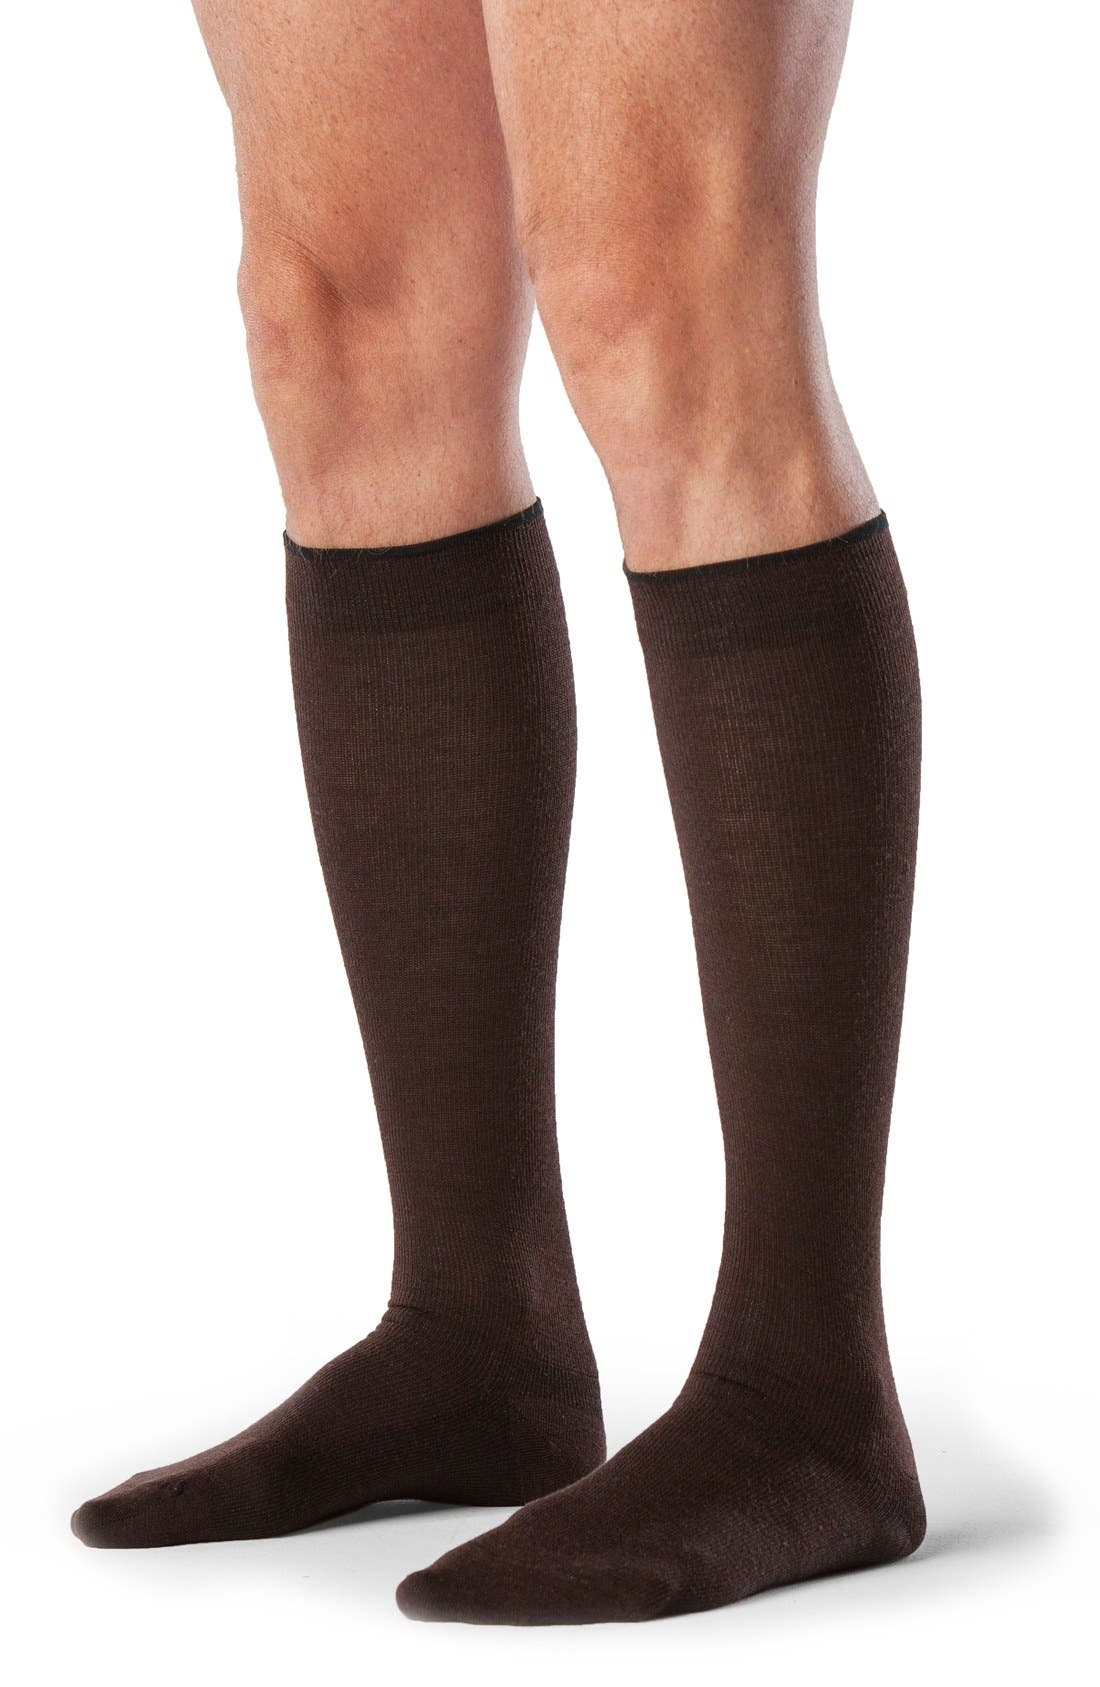 INSIGNIA BY SIGVARIS,                             'Venturist' Over the Calf Socks,                             Alternate thumbnail 3, color,                             BROWN